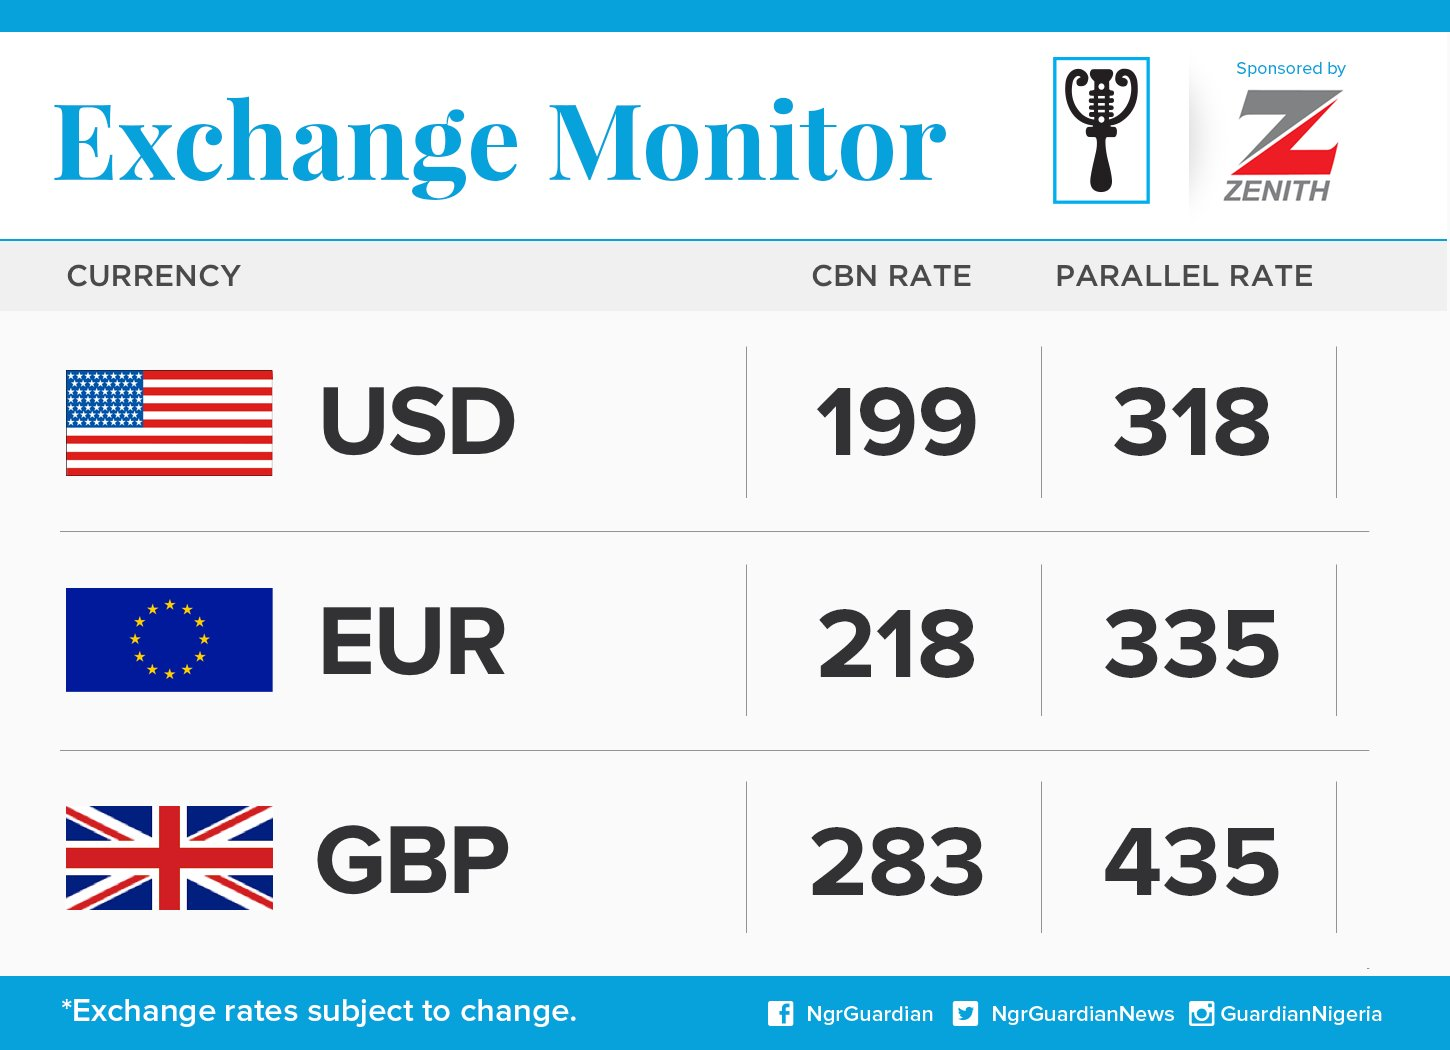 Exchange Rate For March 10, 2016